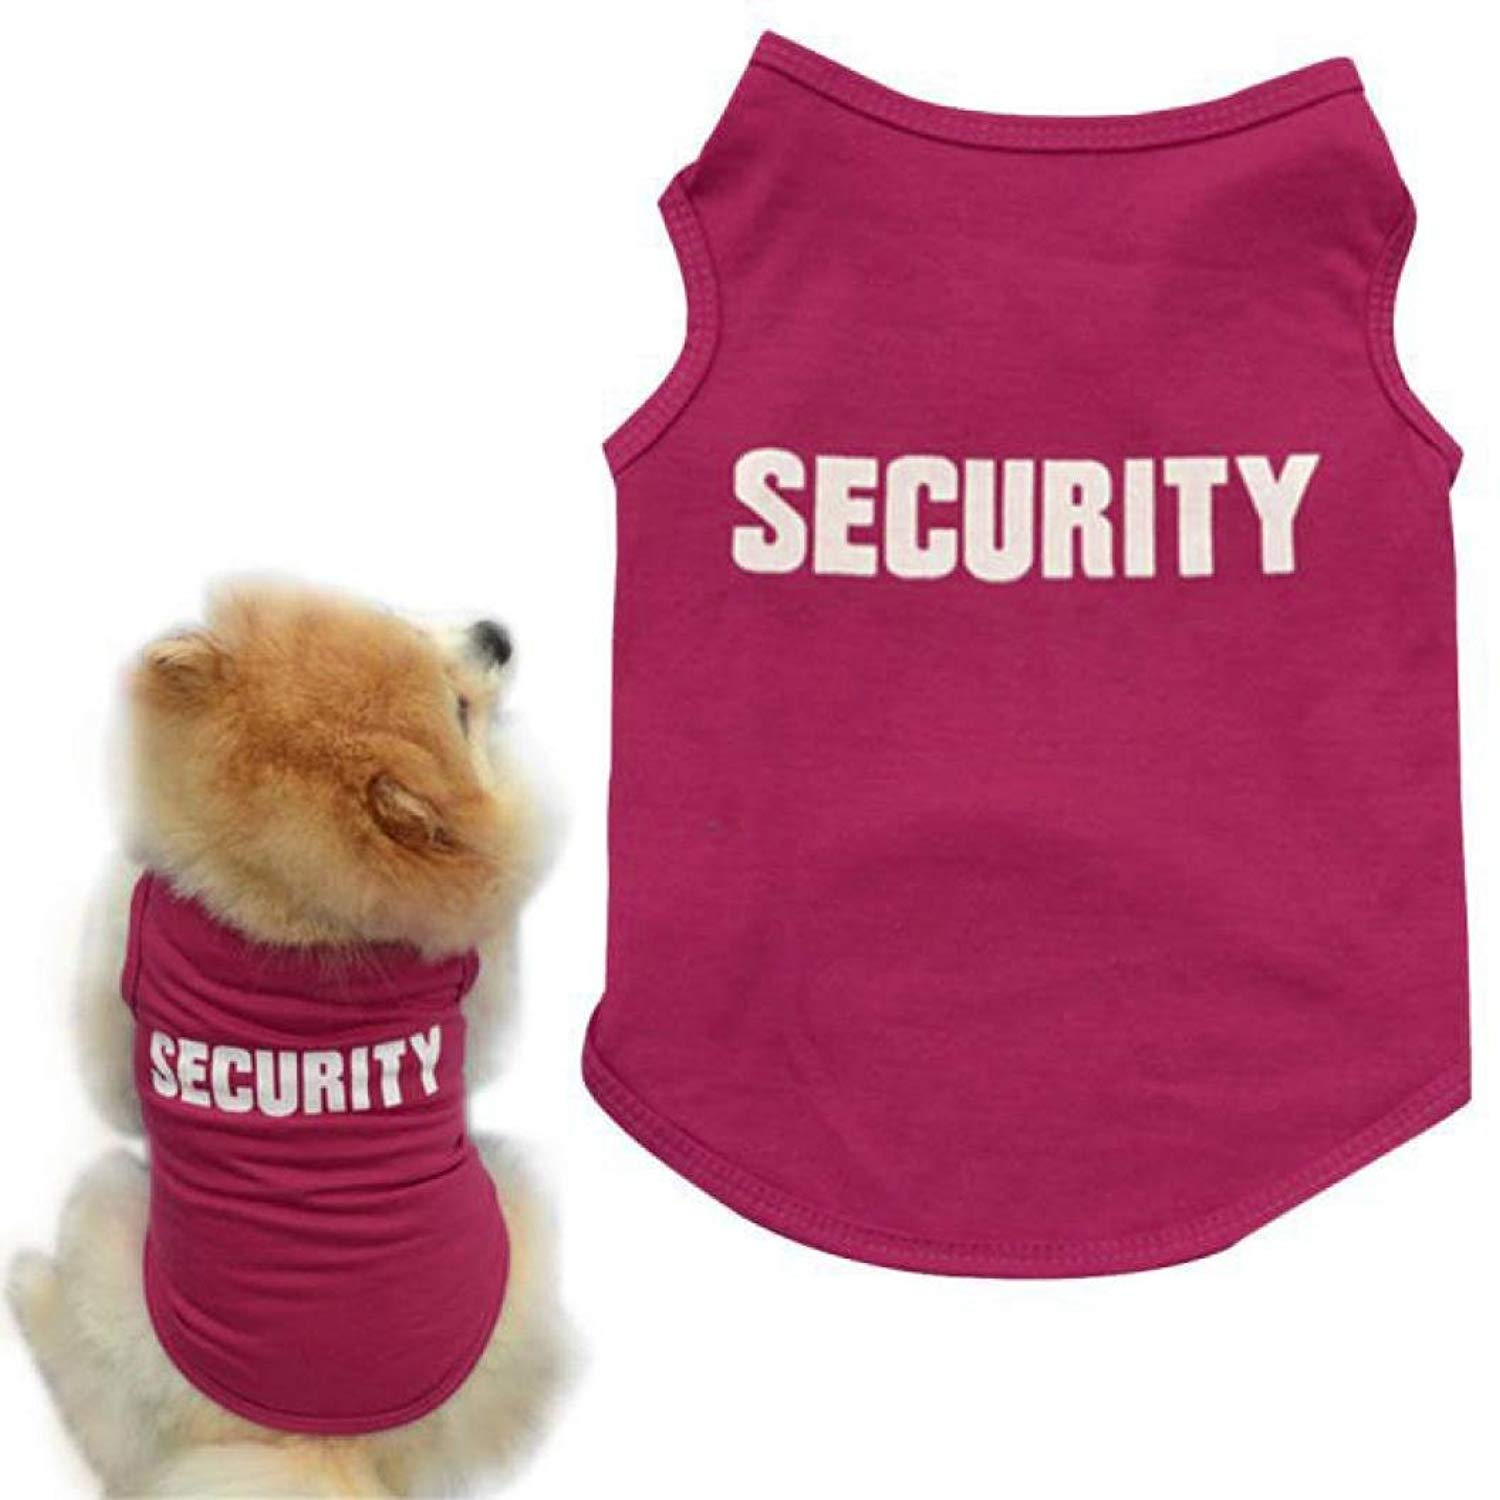 Howstar Pet Clothes, Fashion Puppy Vest Security Print Dog Shirt for Small Dogs Apparel (M, Red)